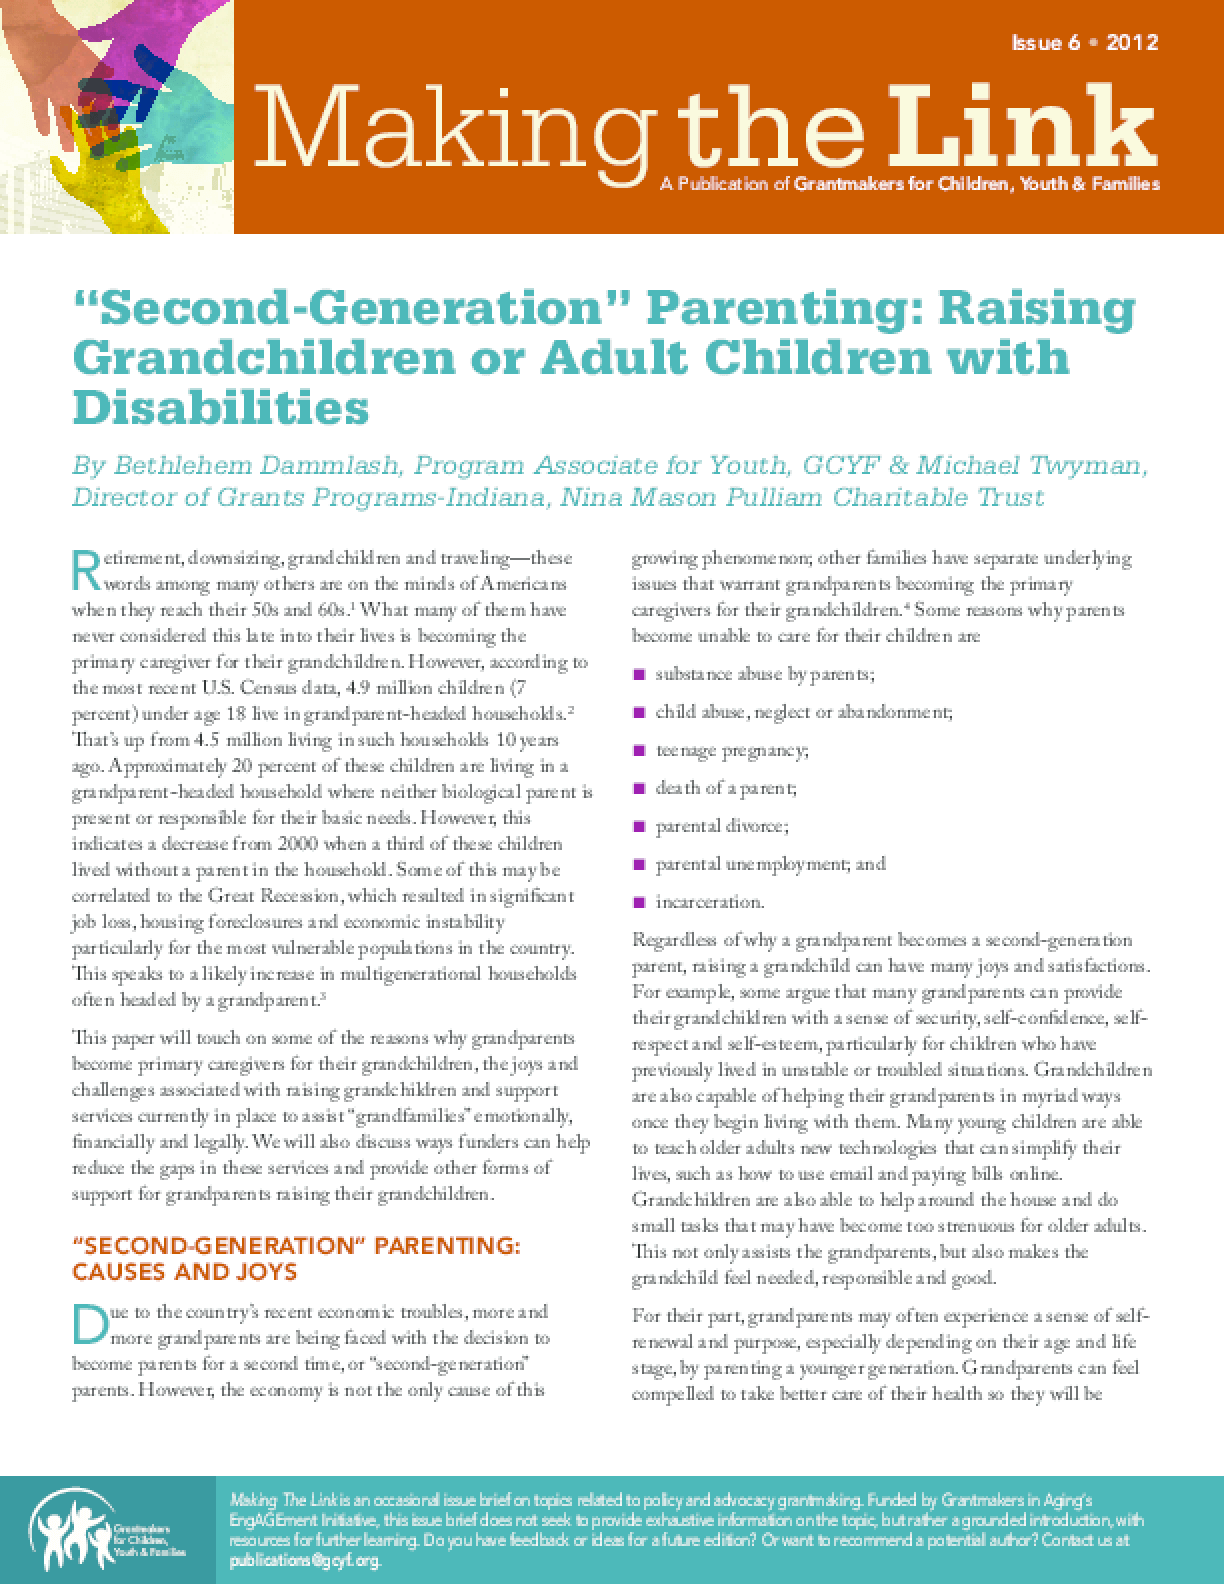 Second Generation Parenting: Raising Grandchildren or Adult Children with Disabilities